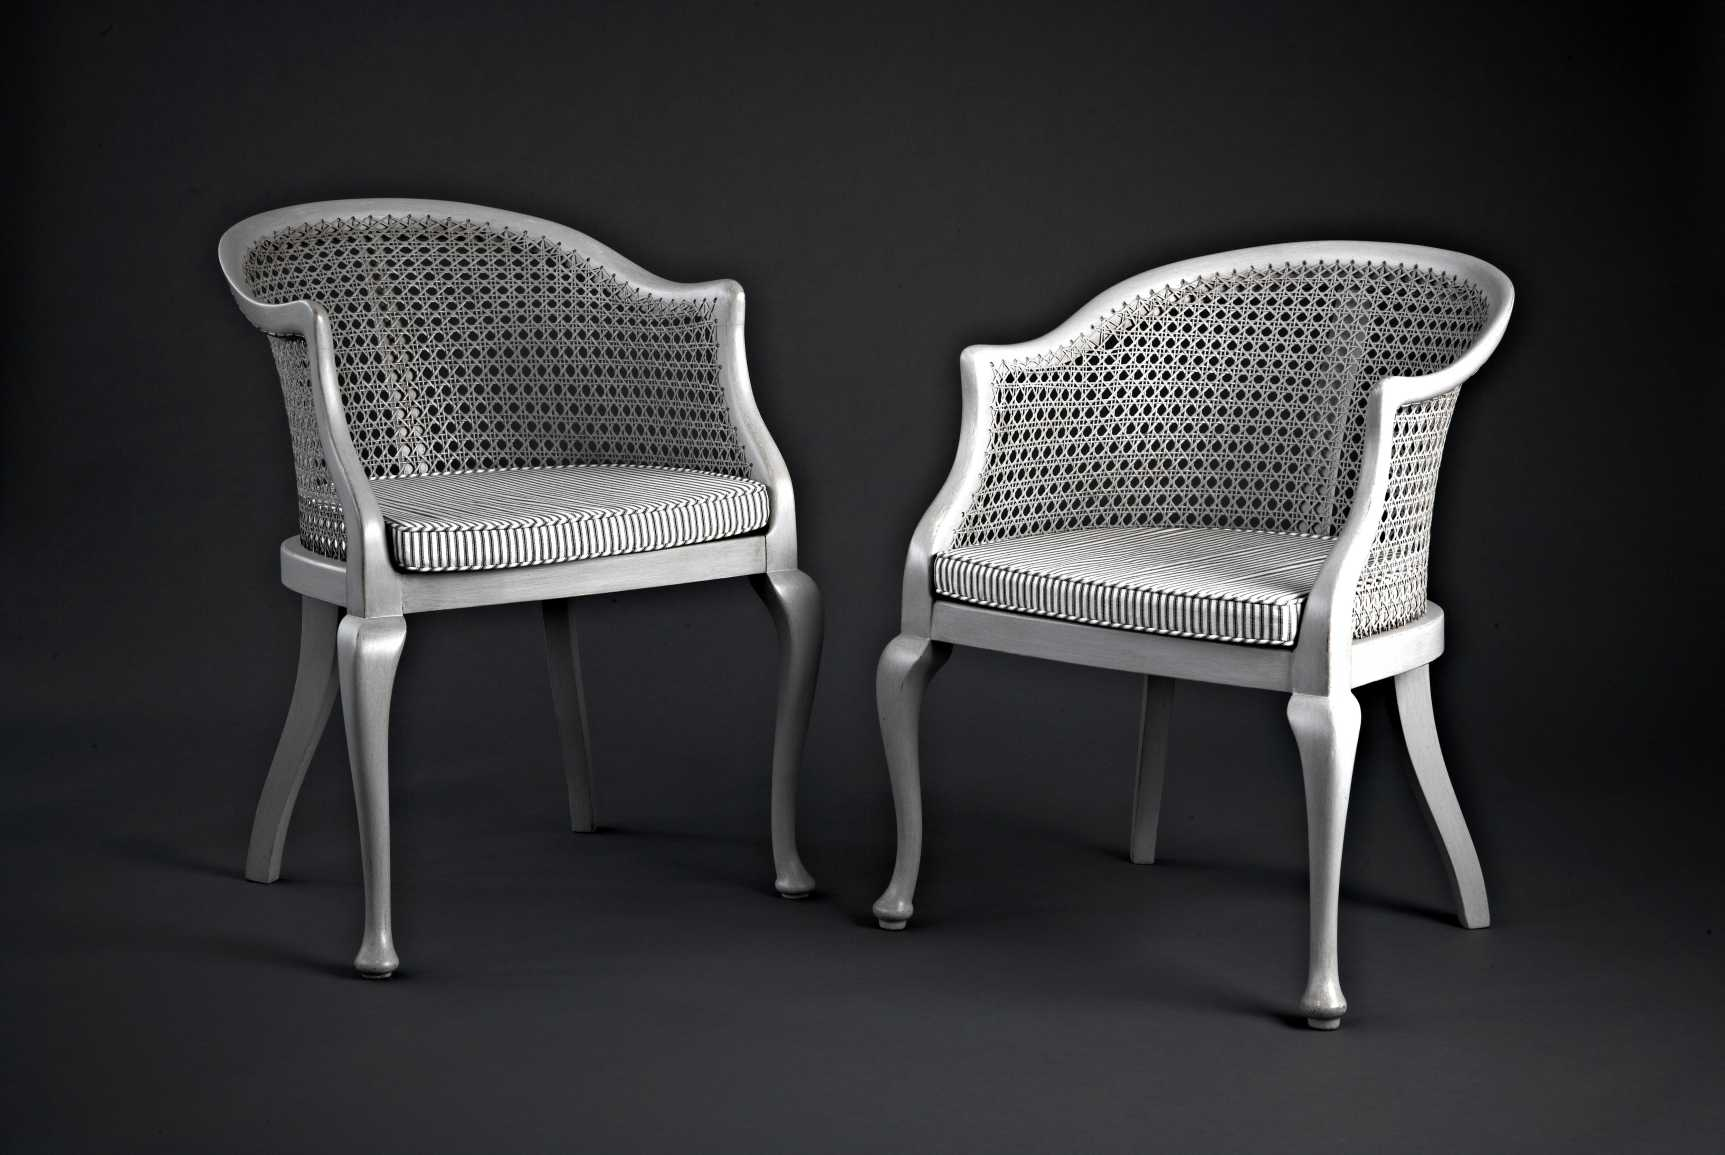 Pair of 20th Century French Chairs. Recaned and finished in a soft aged chalky grey paint with squab cushions in Ian Mankin fabric